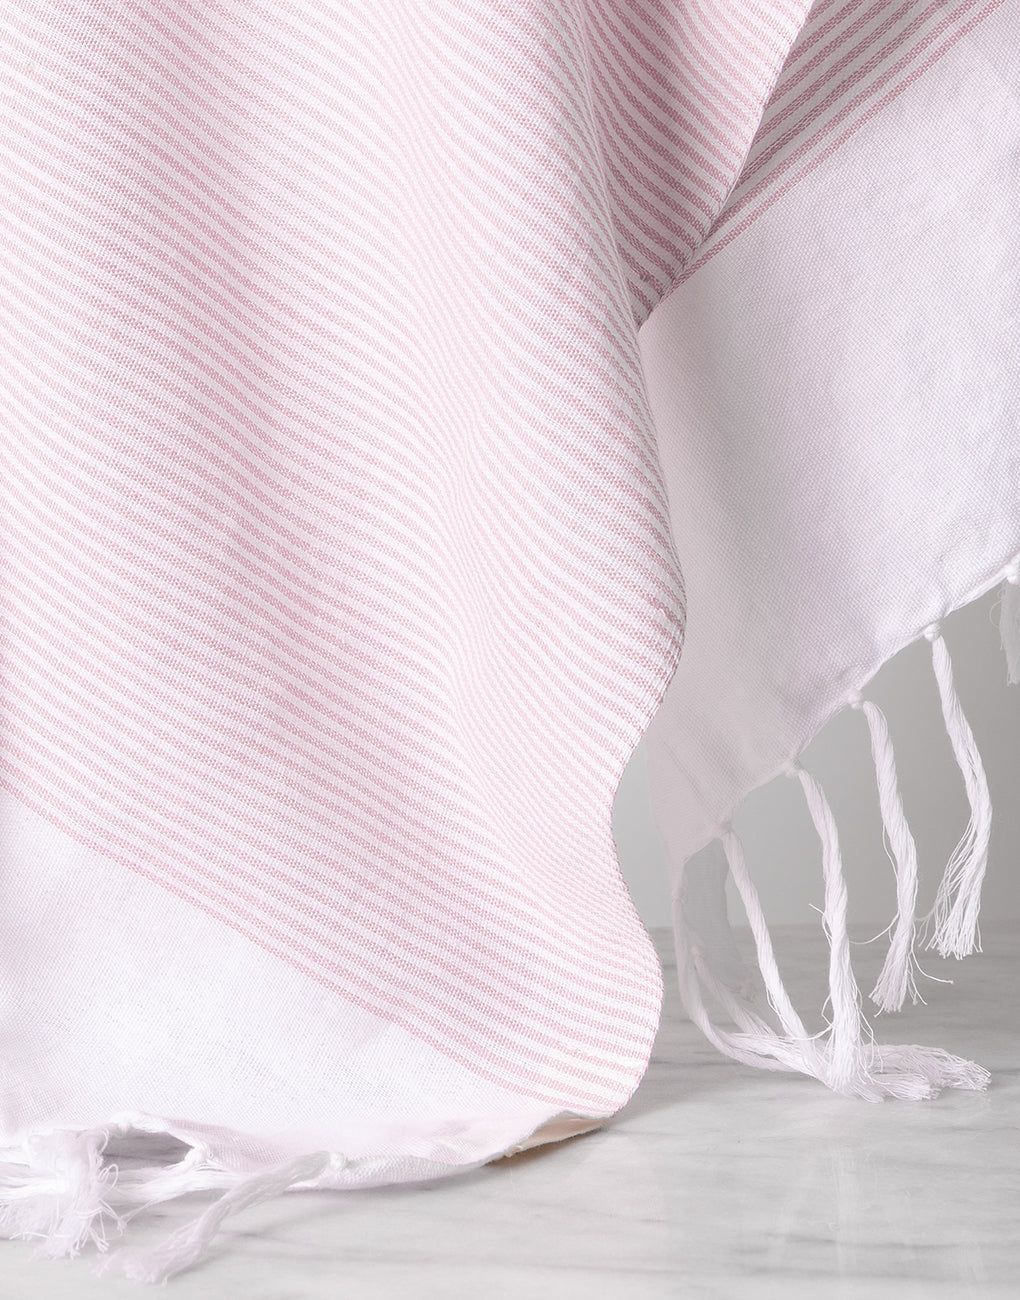 Lightweight Fringe Towel In Style No. 1 In Blush Close Up | The Little Market